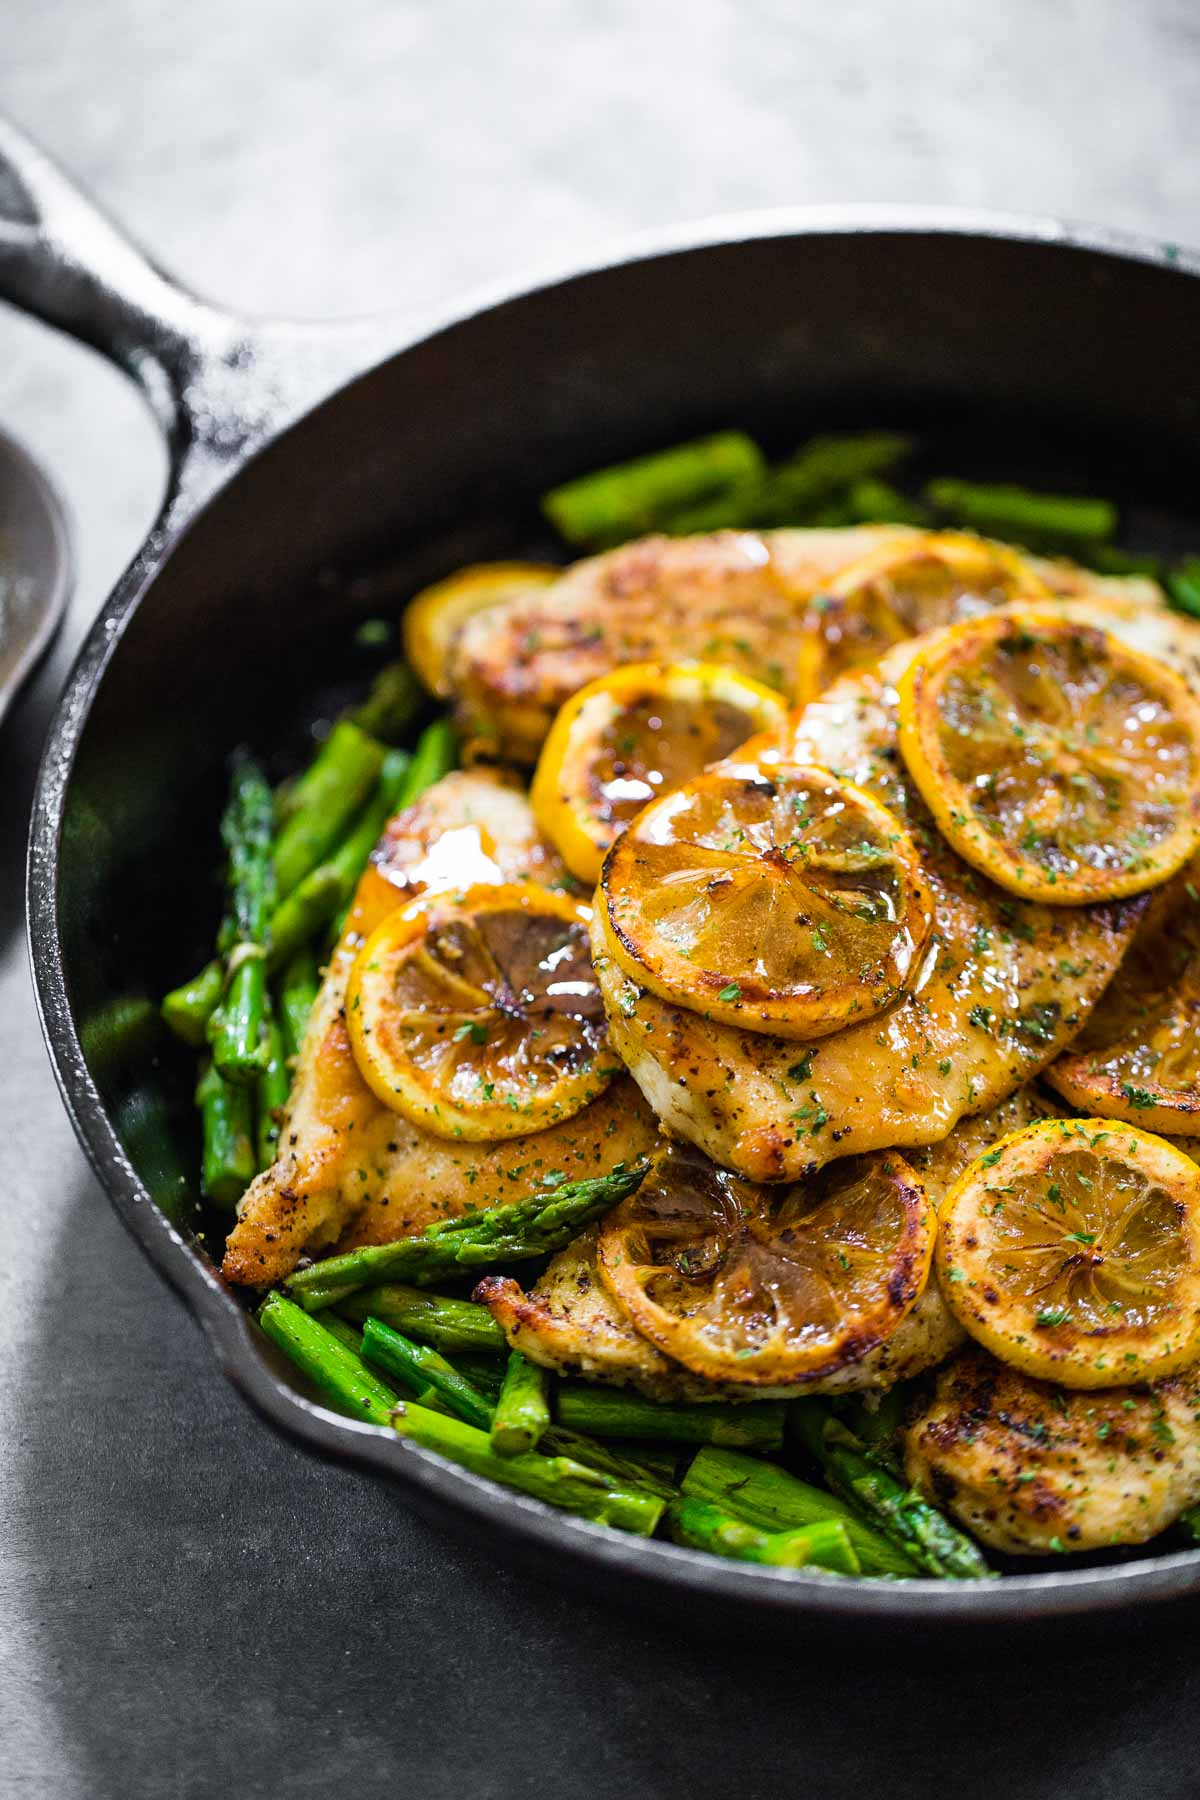 Lemon chicken in a skillet with green beans